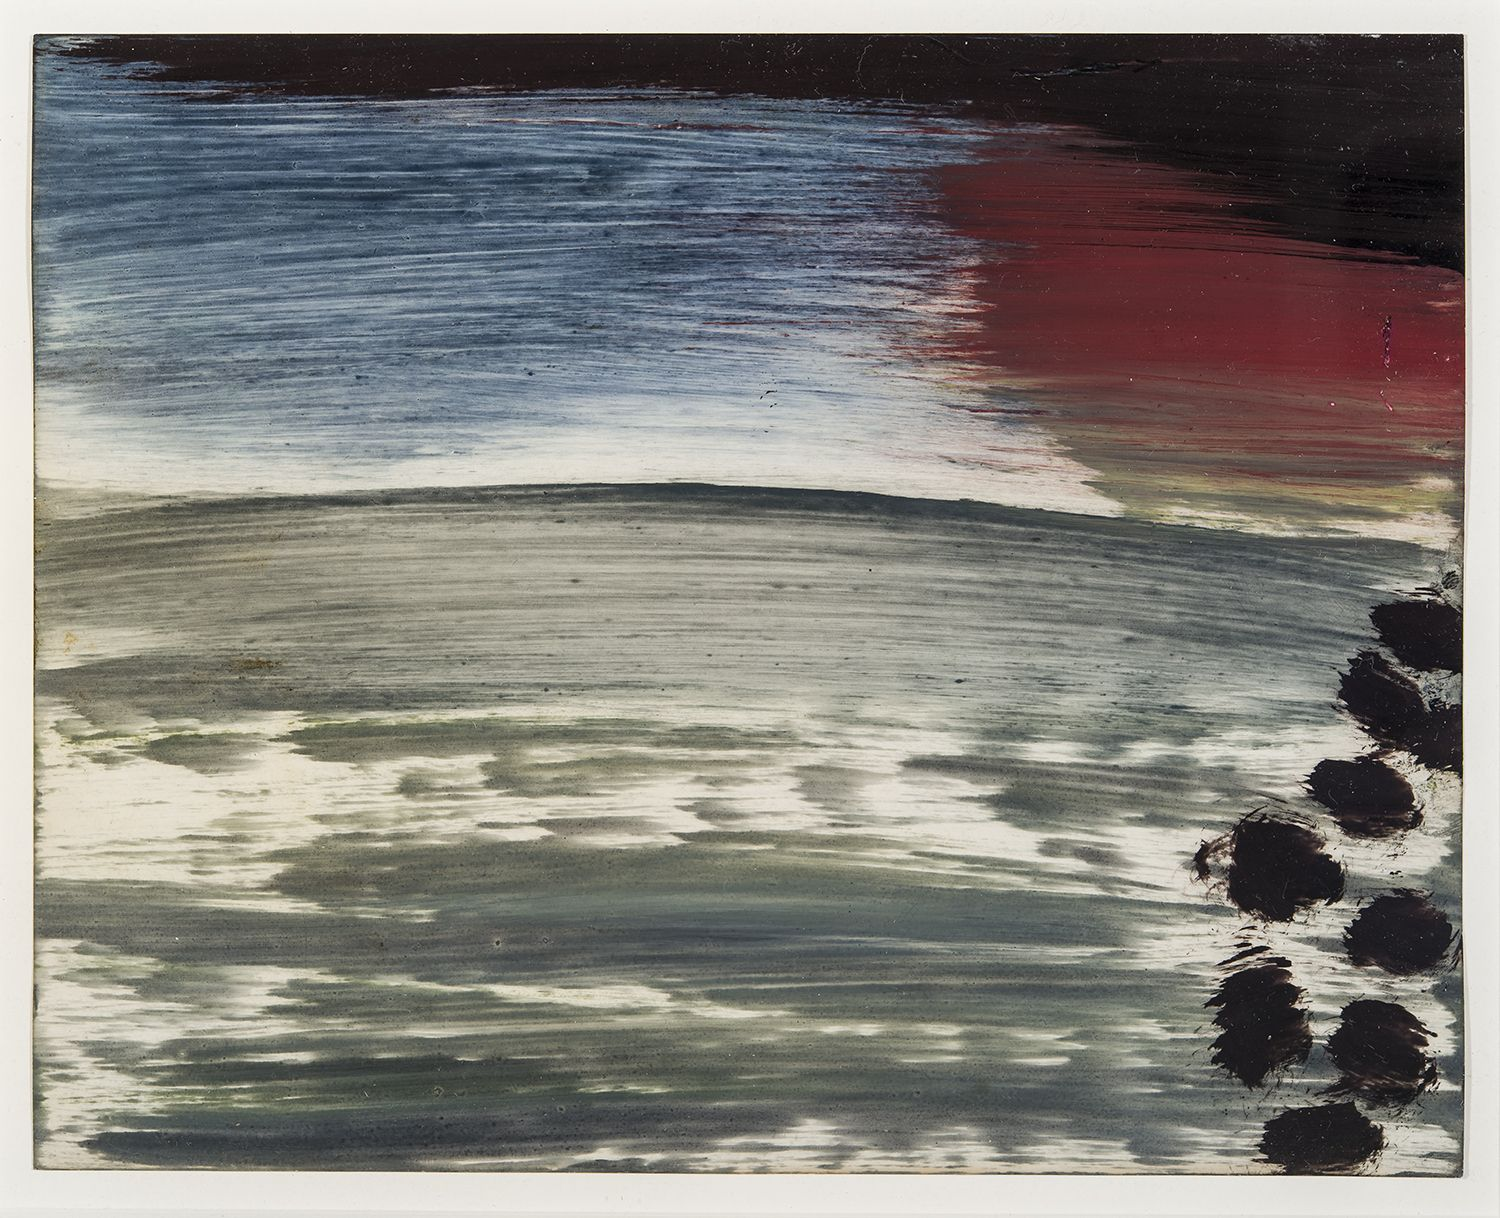 a highly abstract painting by Frank Walter of gray water with a darkening sky